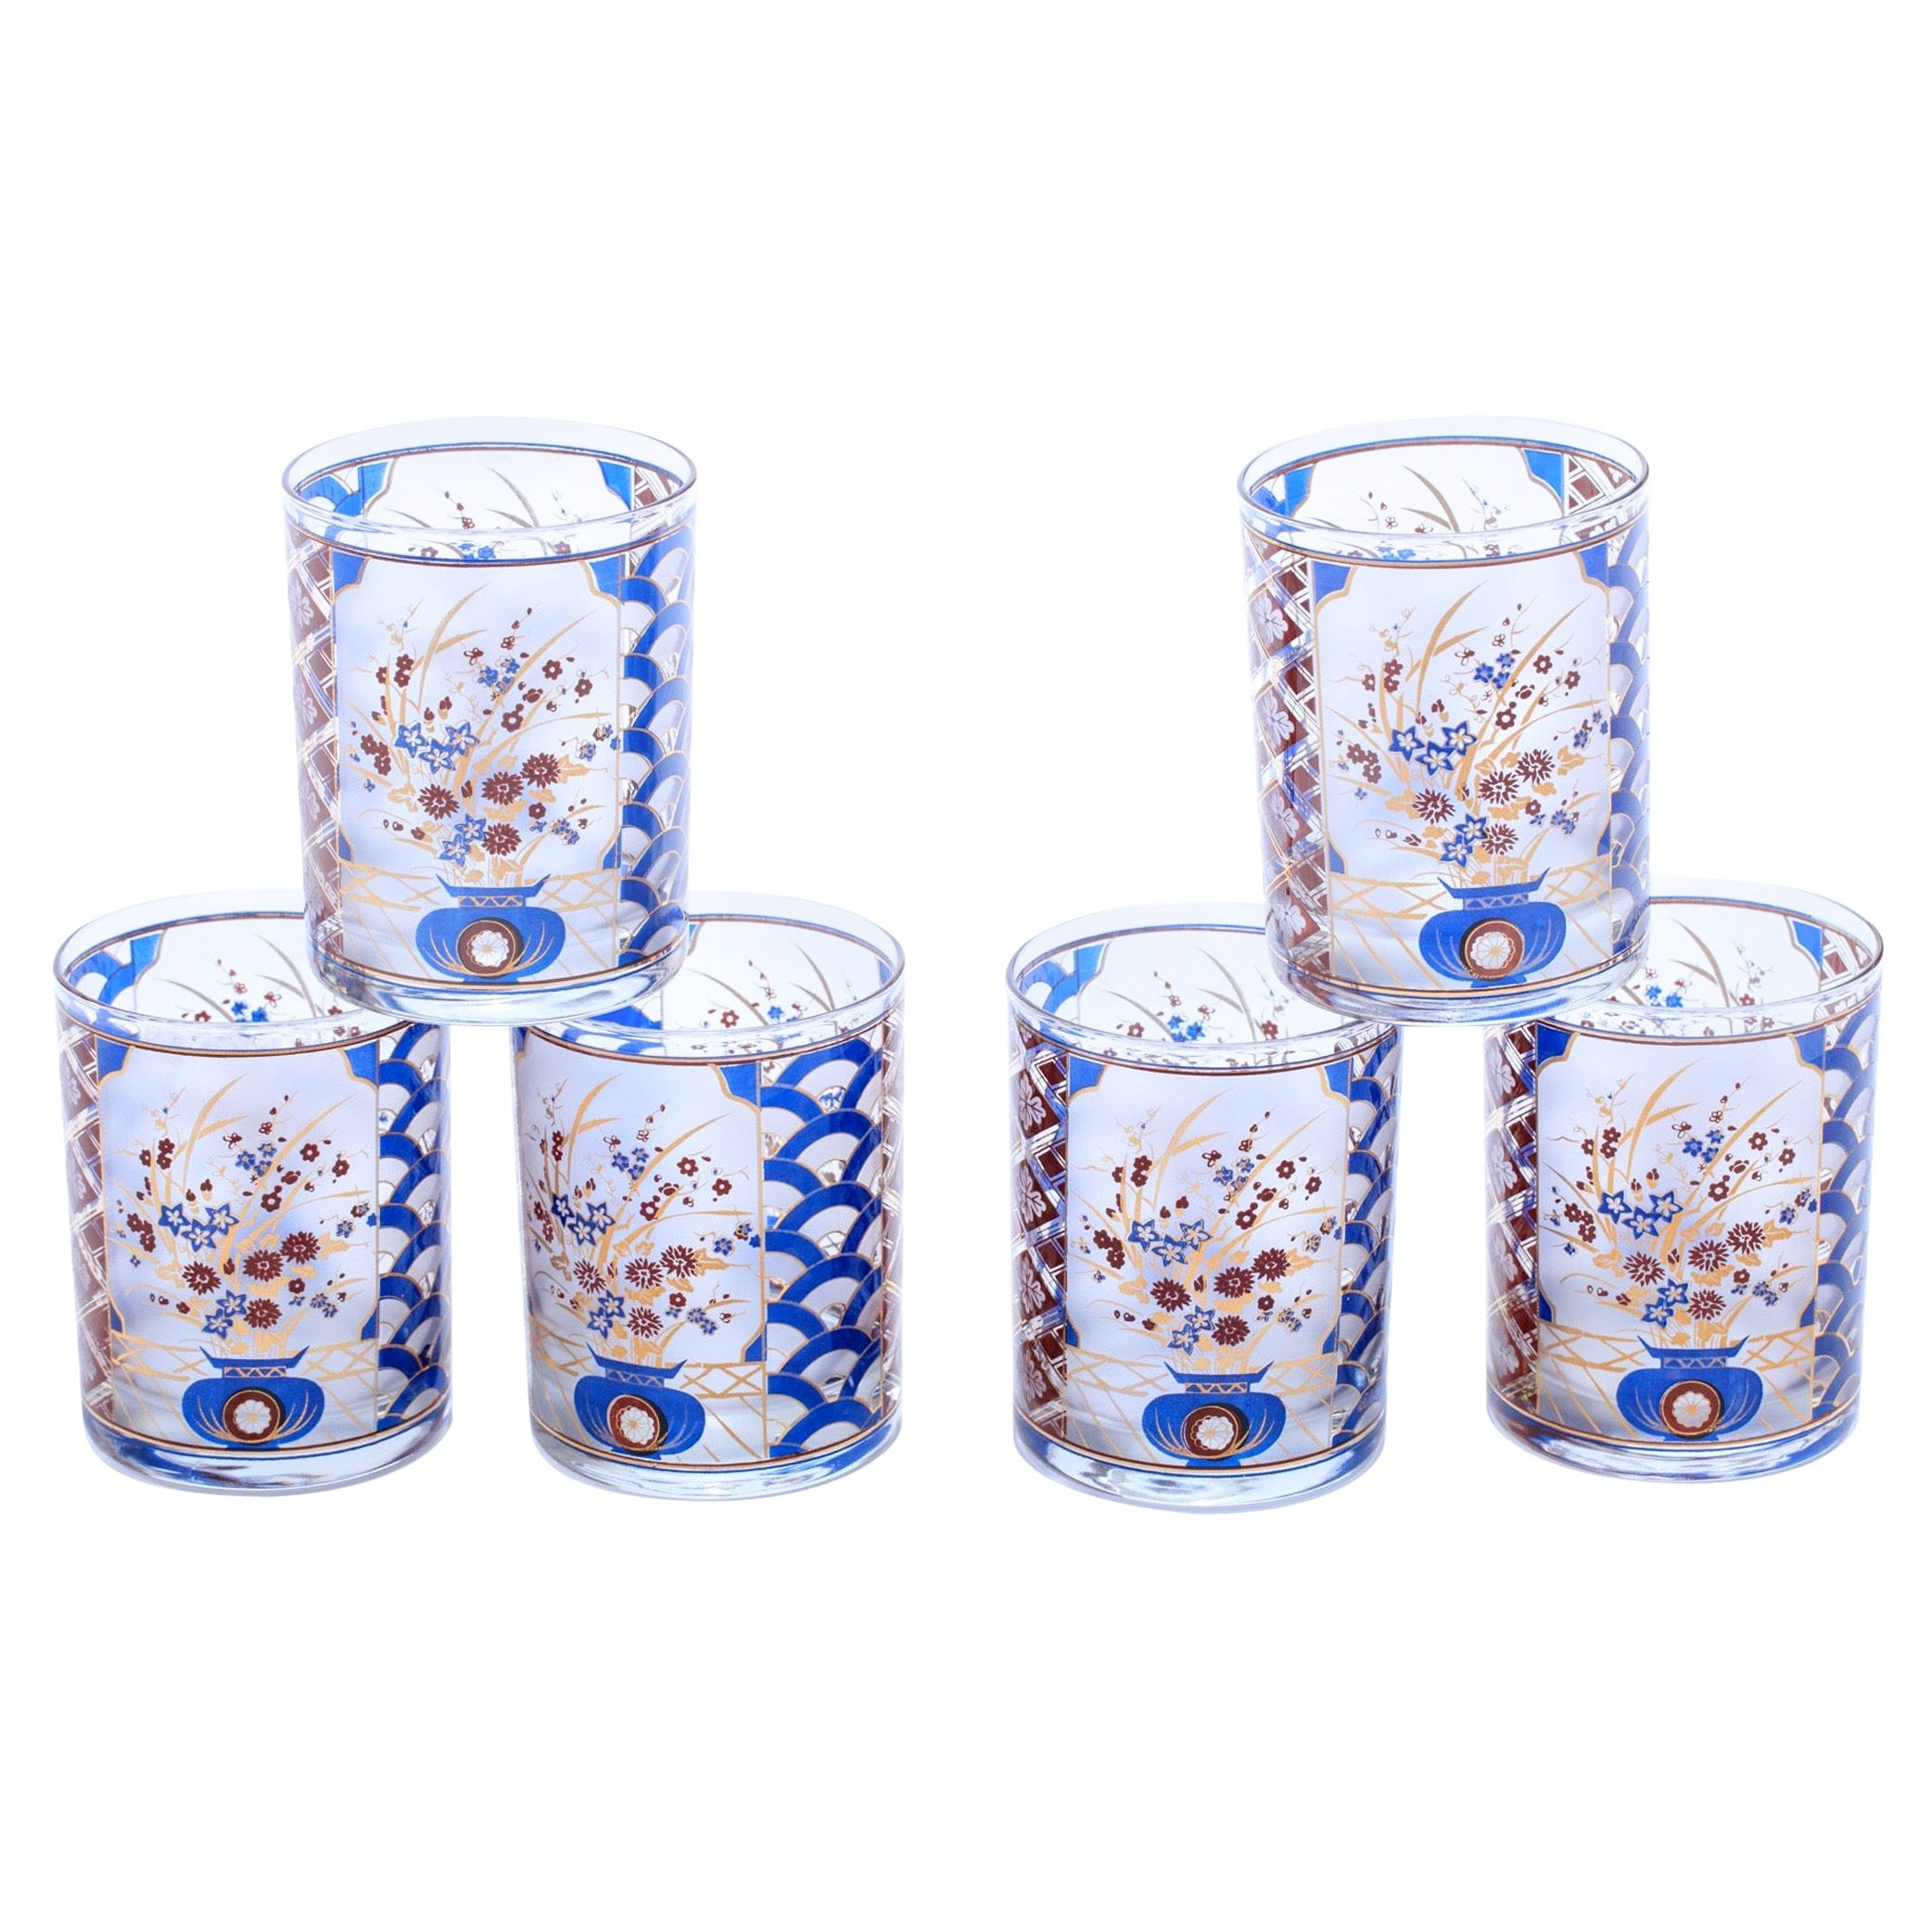 22-Karat Gold Chinoiserie Themed Rocks Glasses, circa 1960s